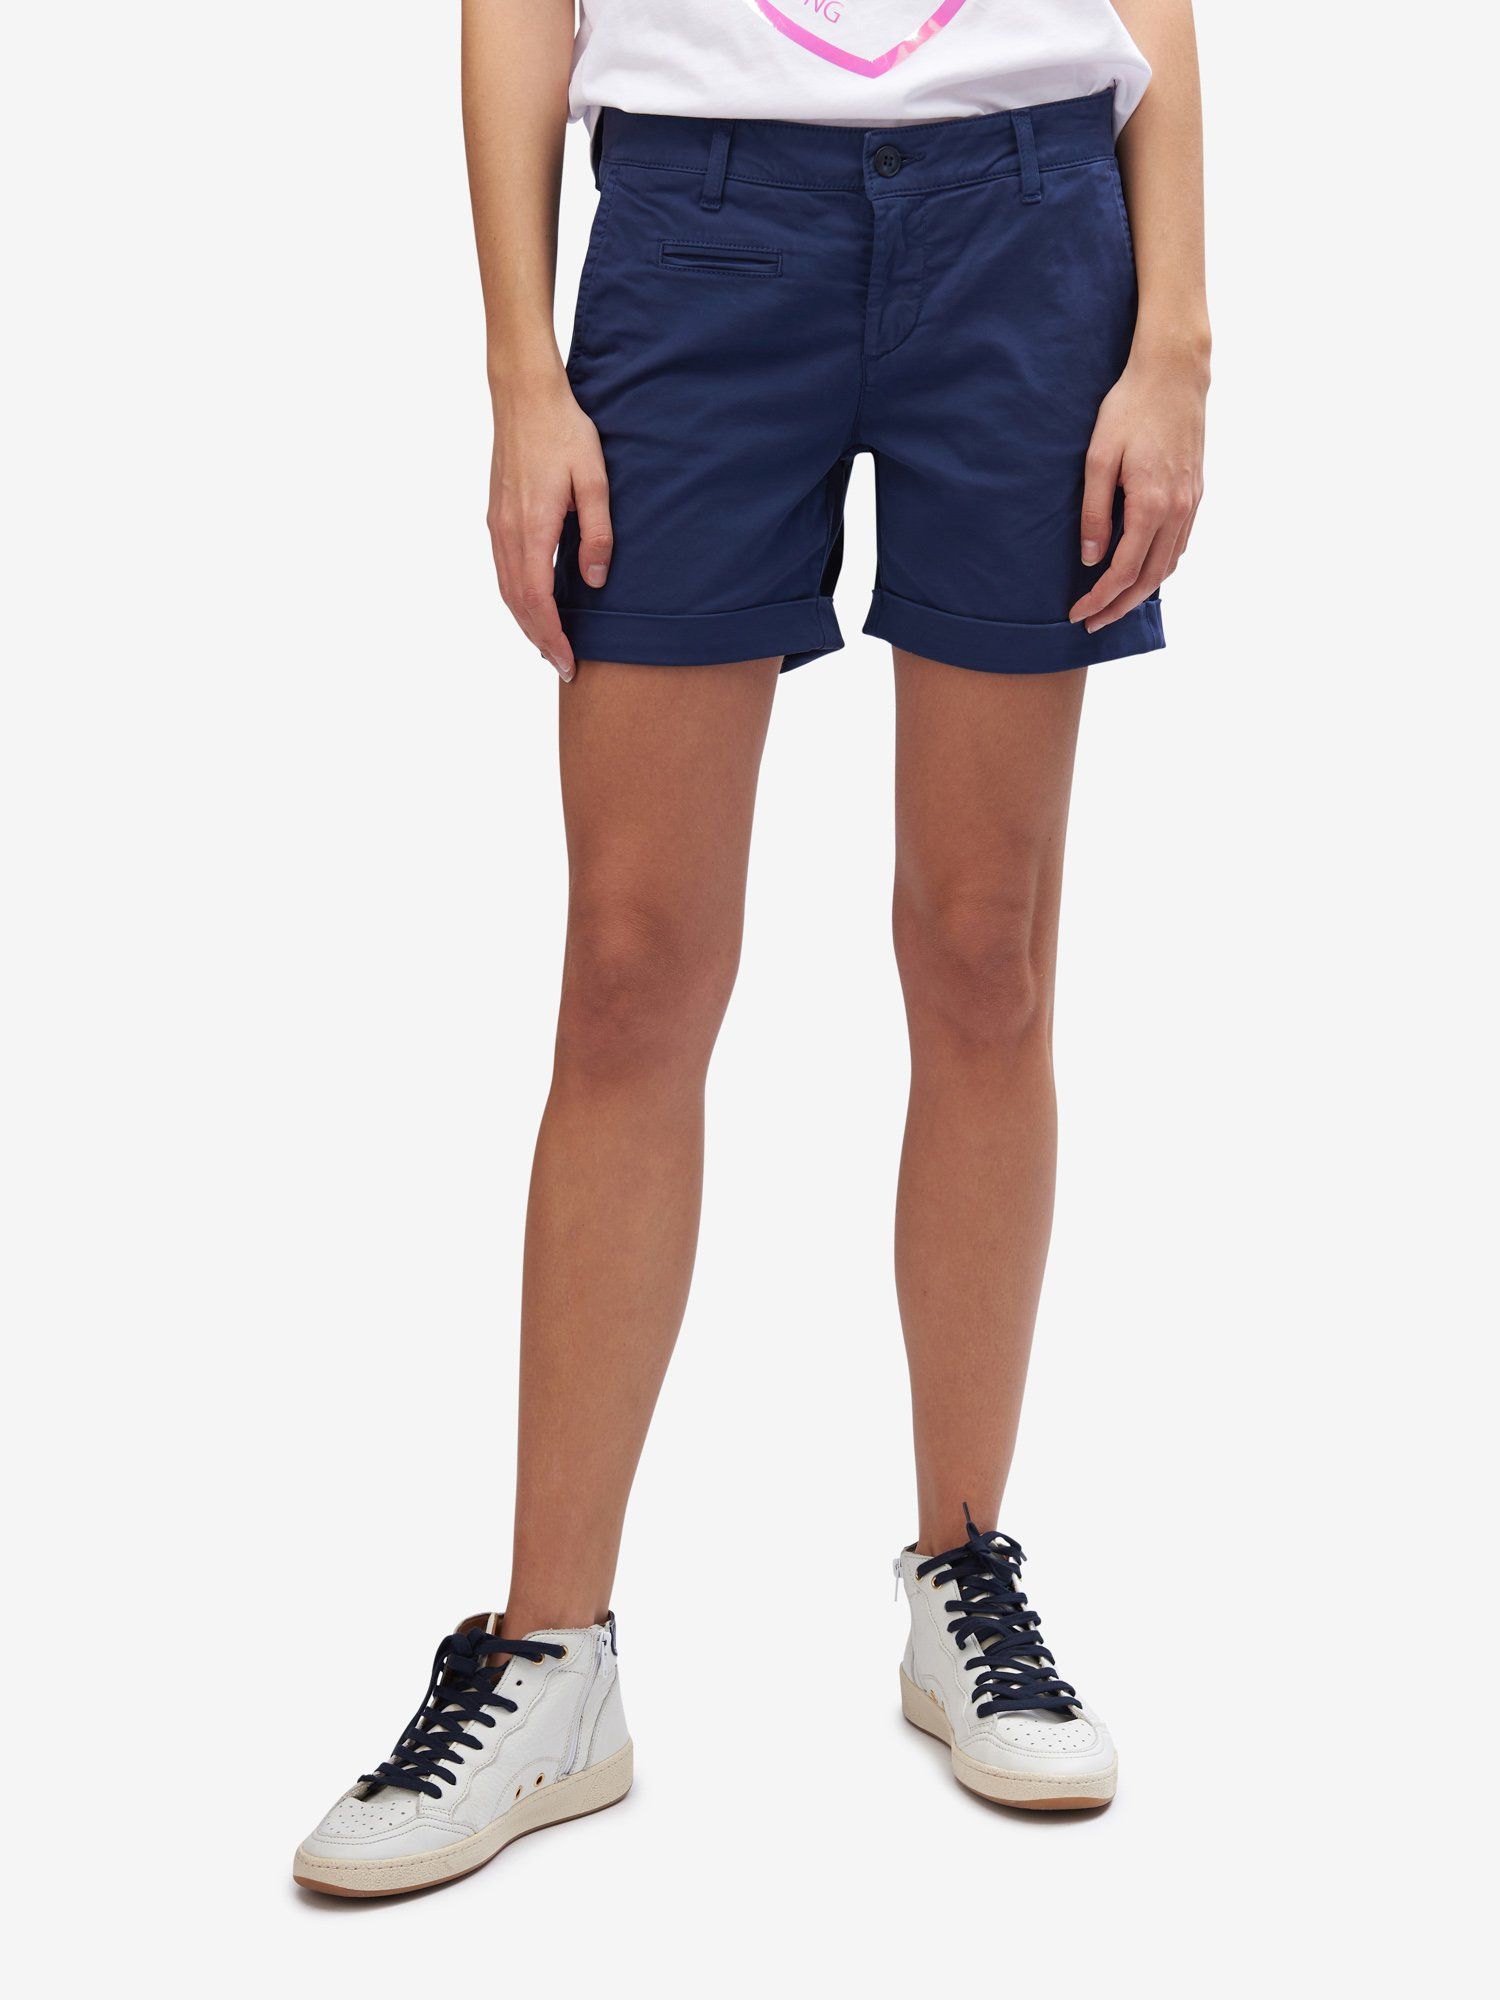 COTTON-BLEND SHORTS - Blauer